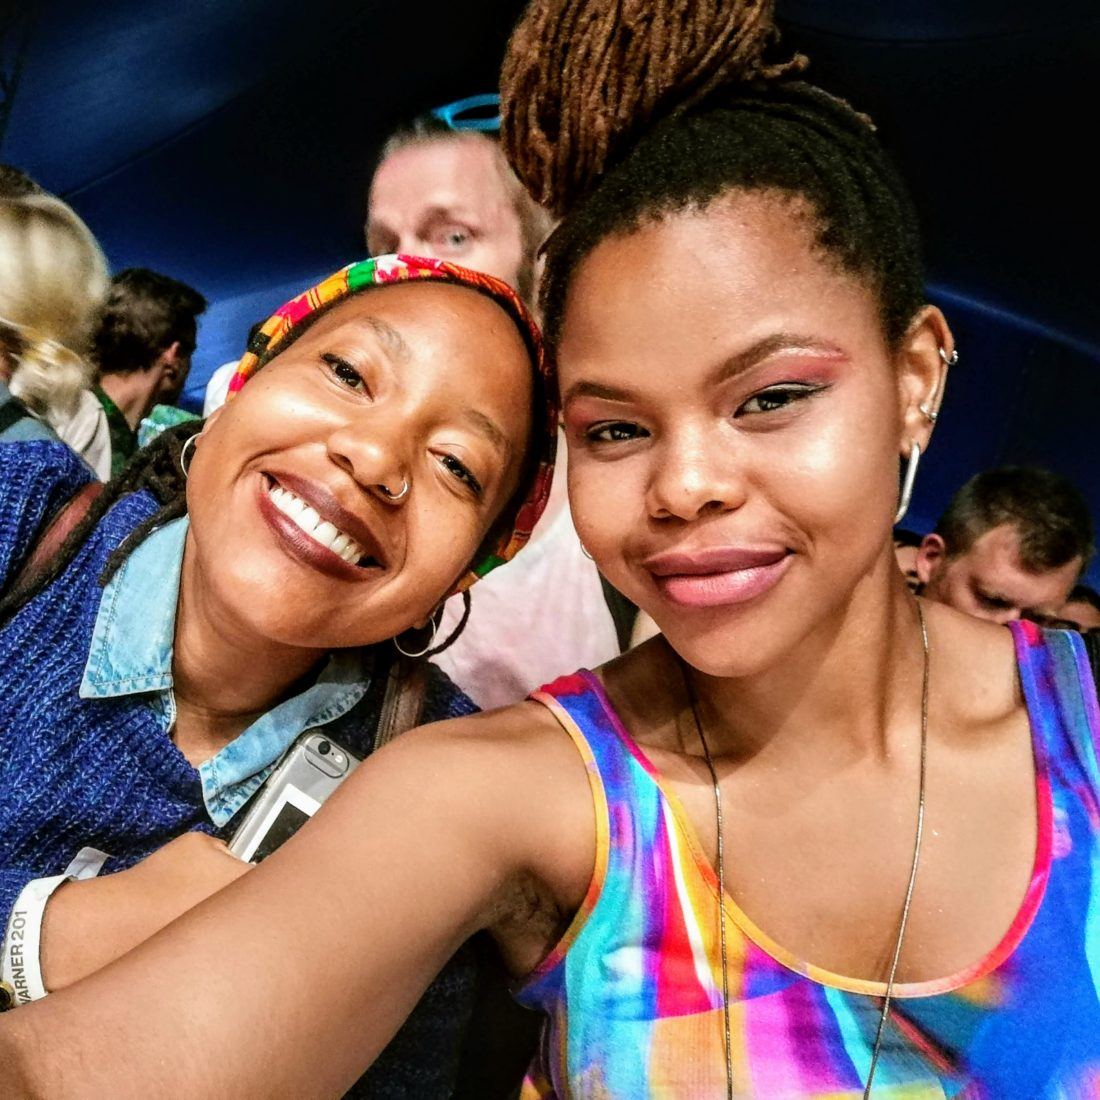 Me (right) and my friend Nthupula (left) from South Africa, before watching Khruangbin at WOW. Photo: Lusanda